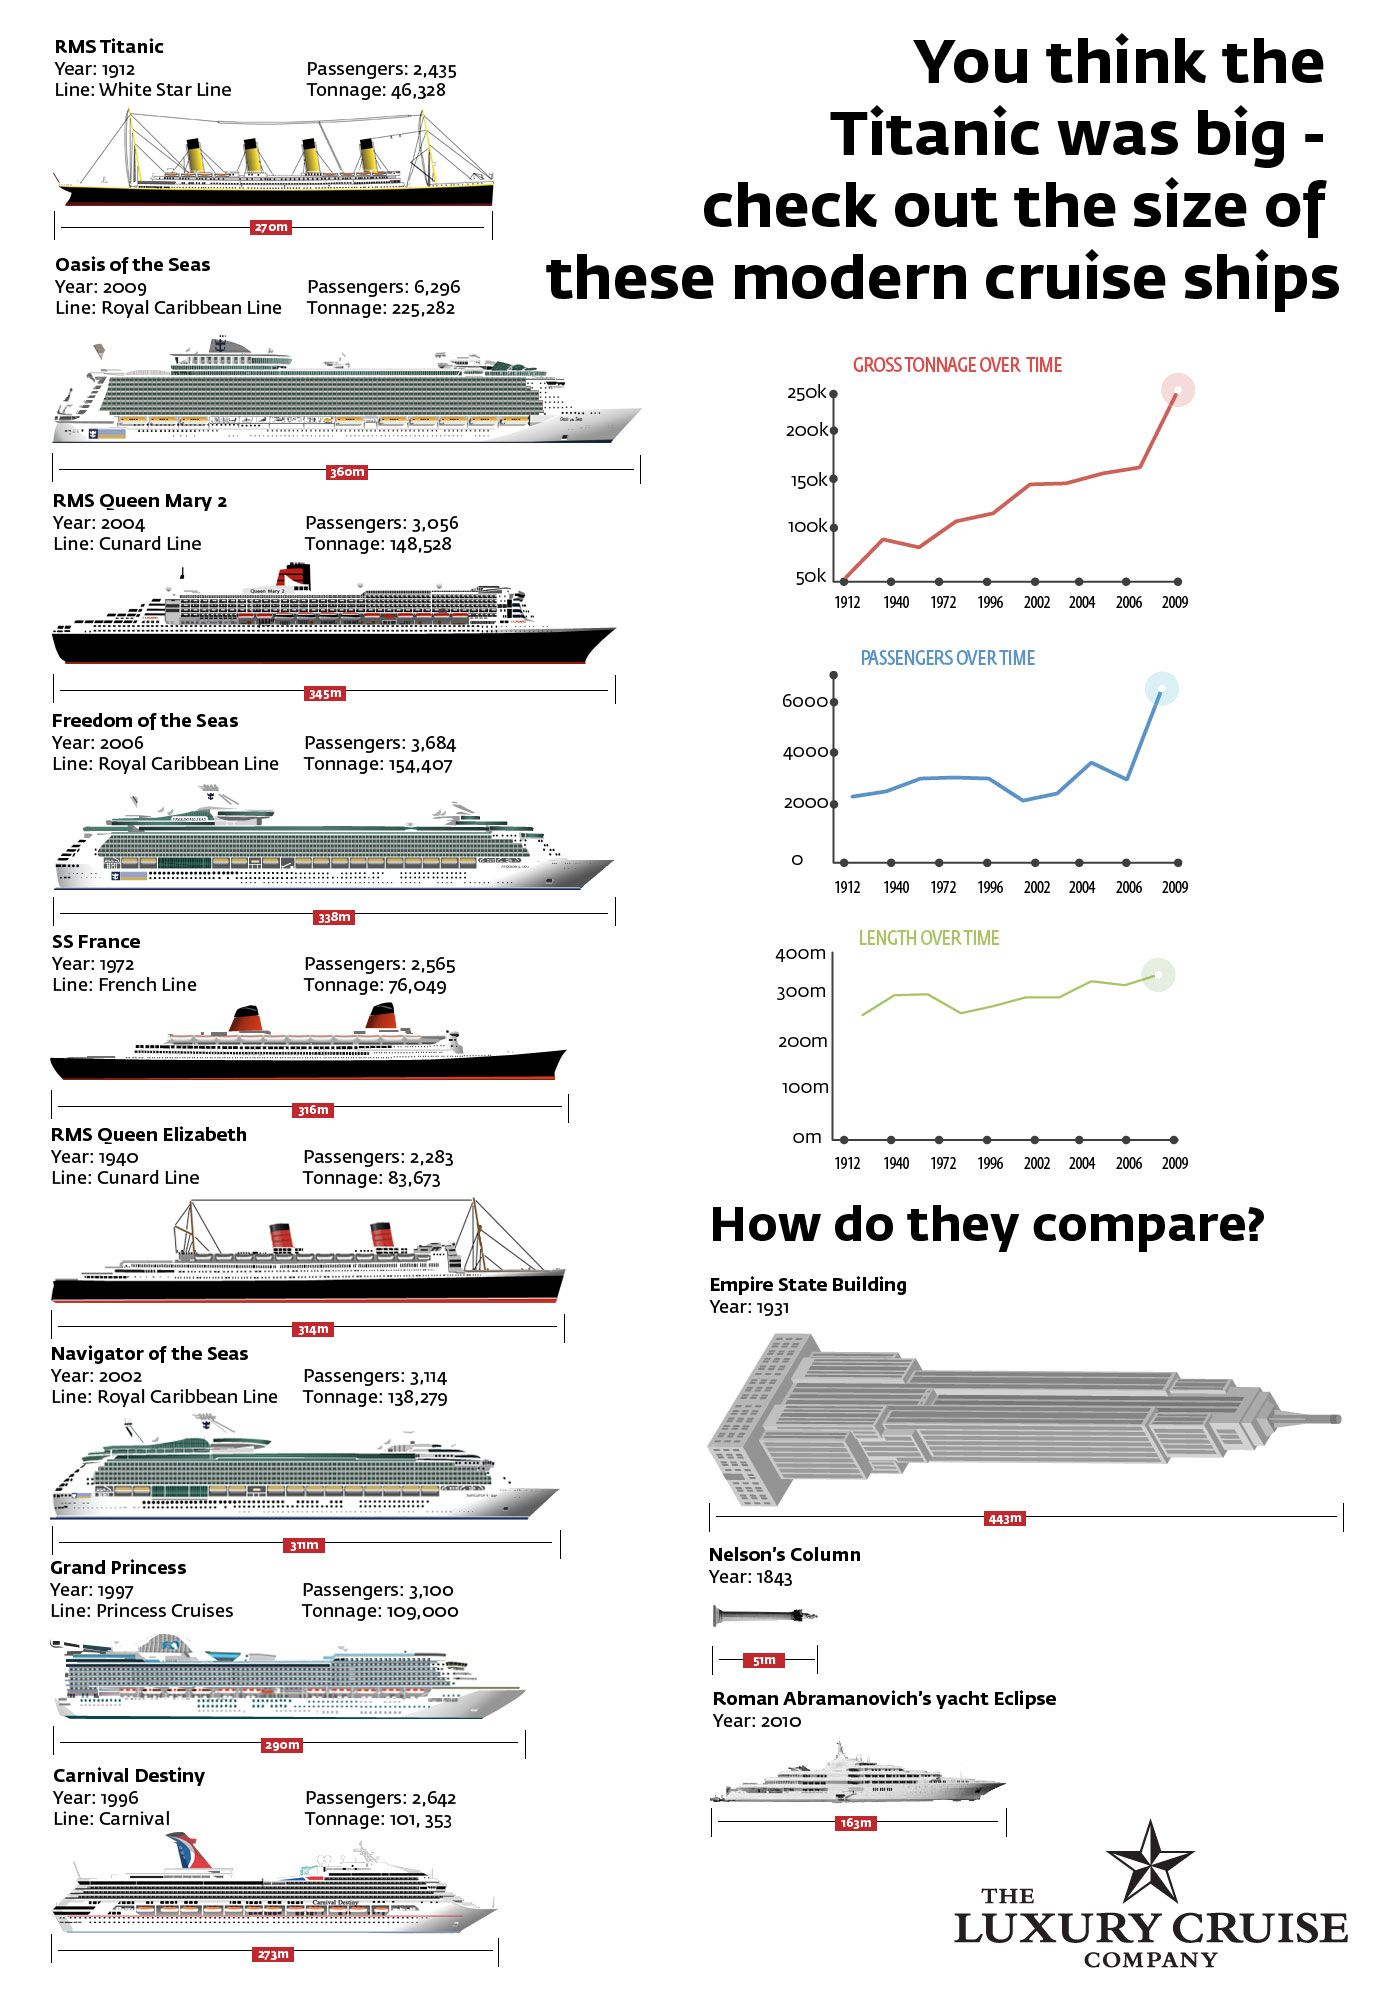 Infographic titanic vs todays cruise ships how do they compare infographic titanic vs todays cruise ships how do they compare pooptronica